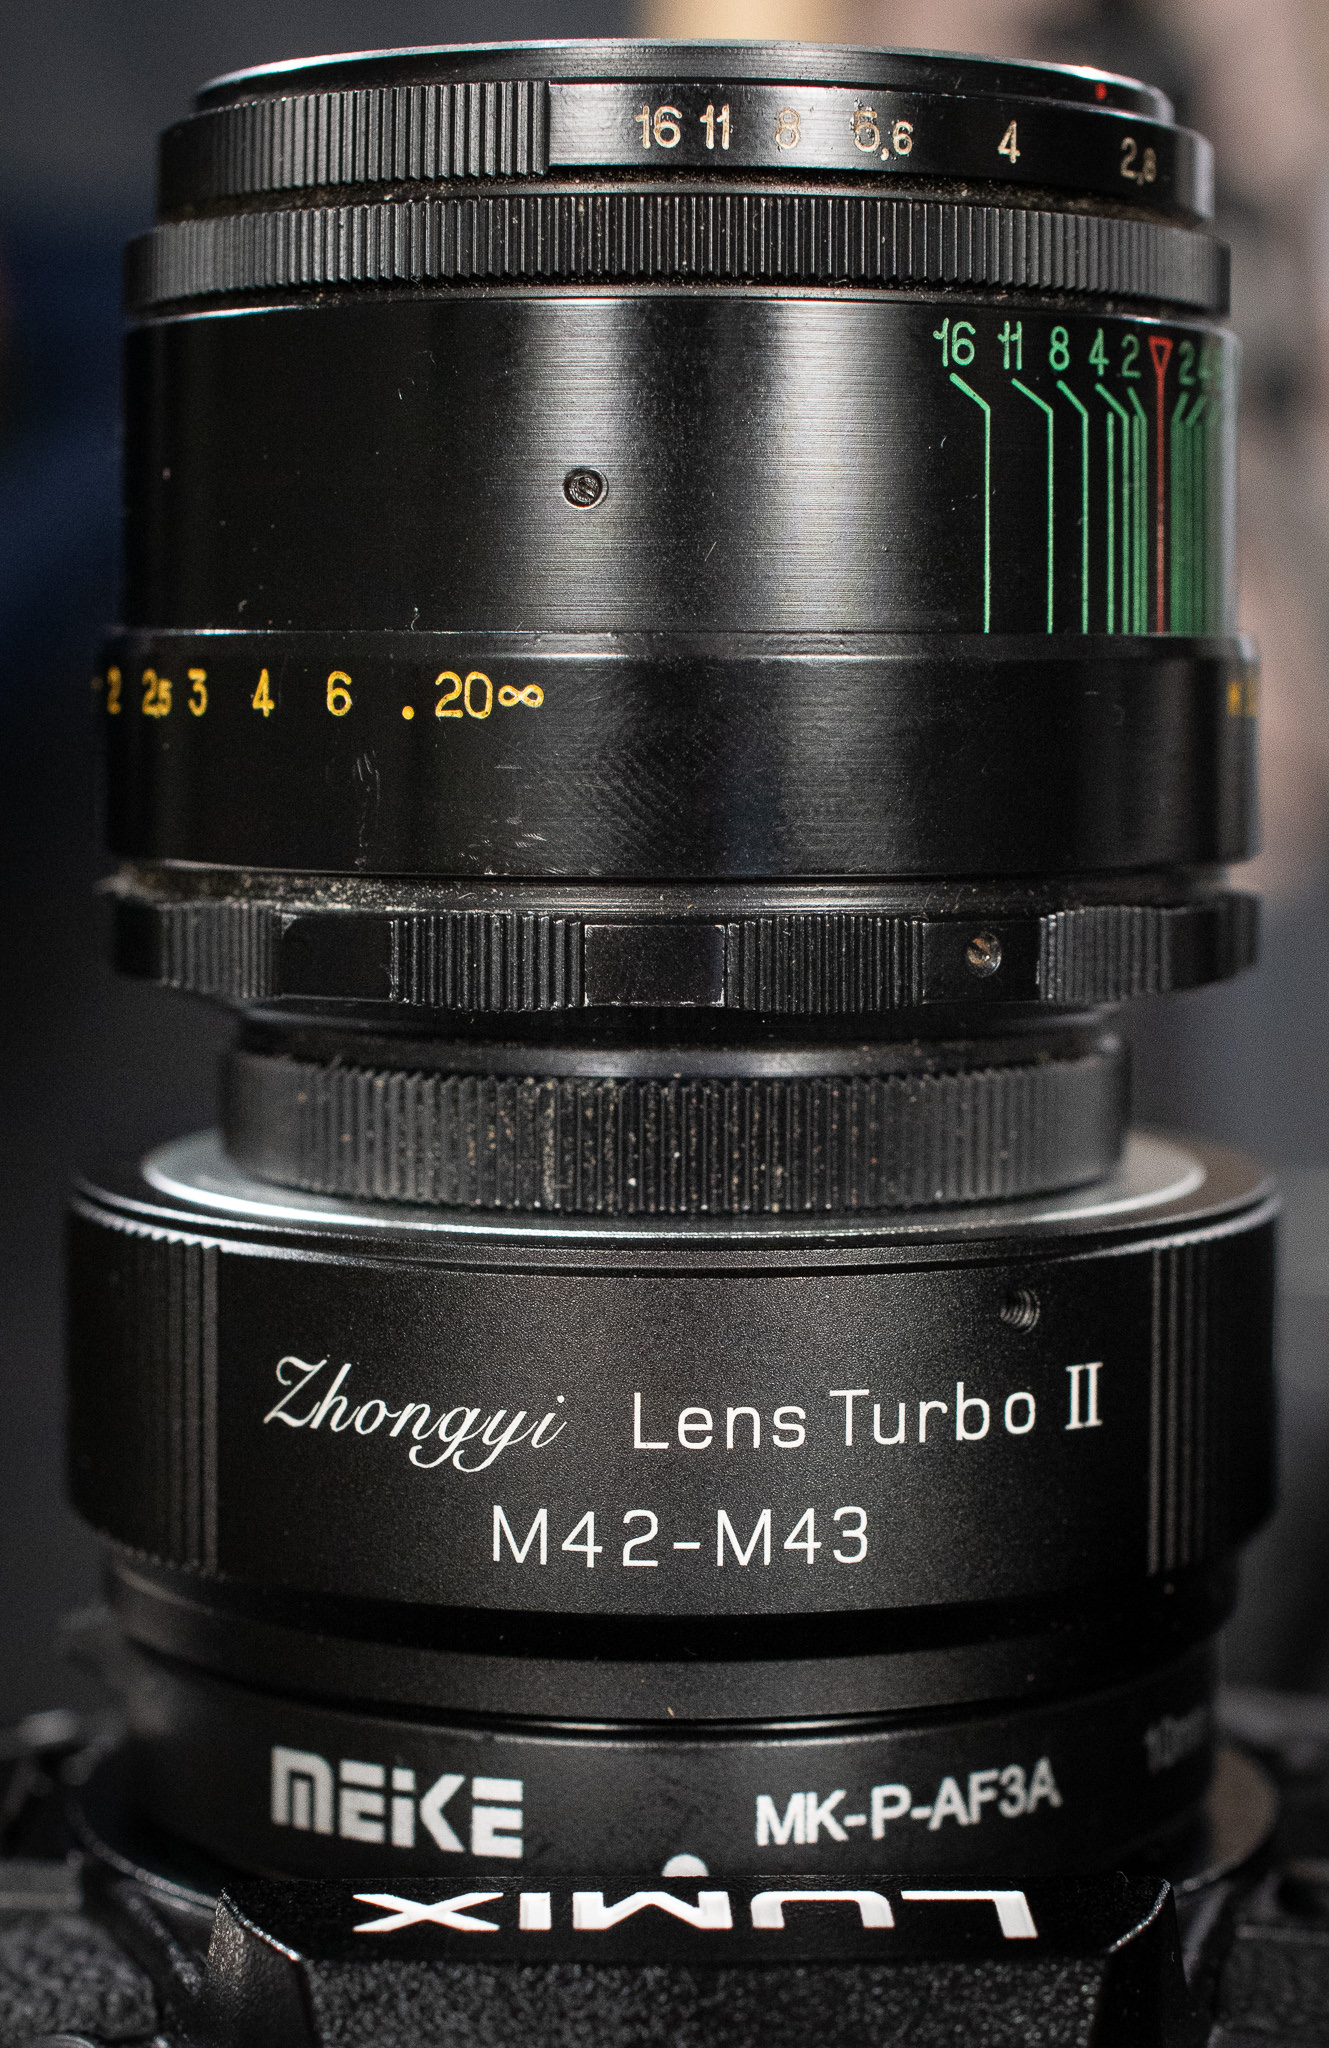 The Russian Helios 44-2 2/58 and Zhongyi M42 to M43 adapter and the Meike macro extension tubes on a LUMIX G9